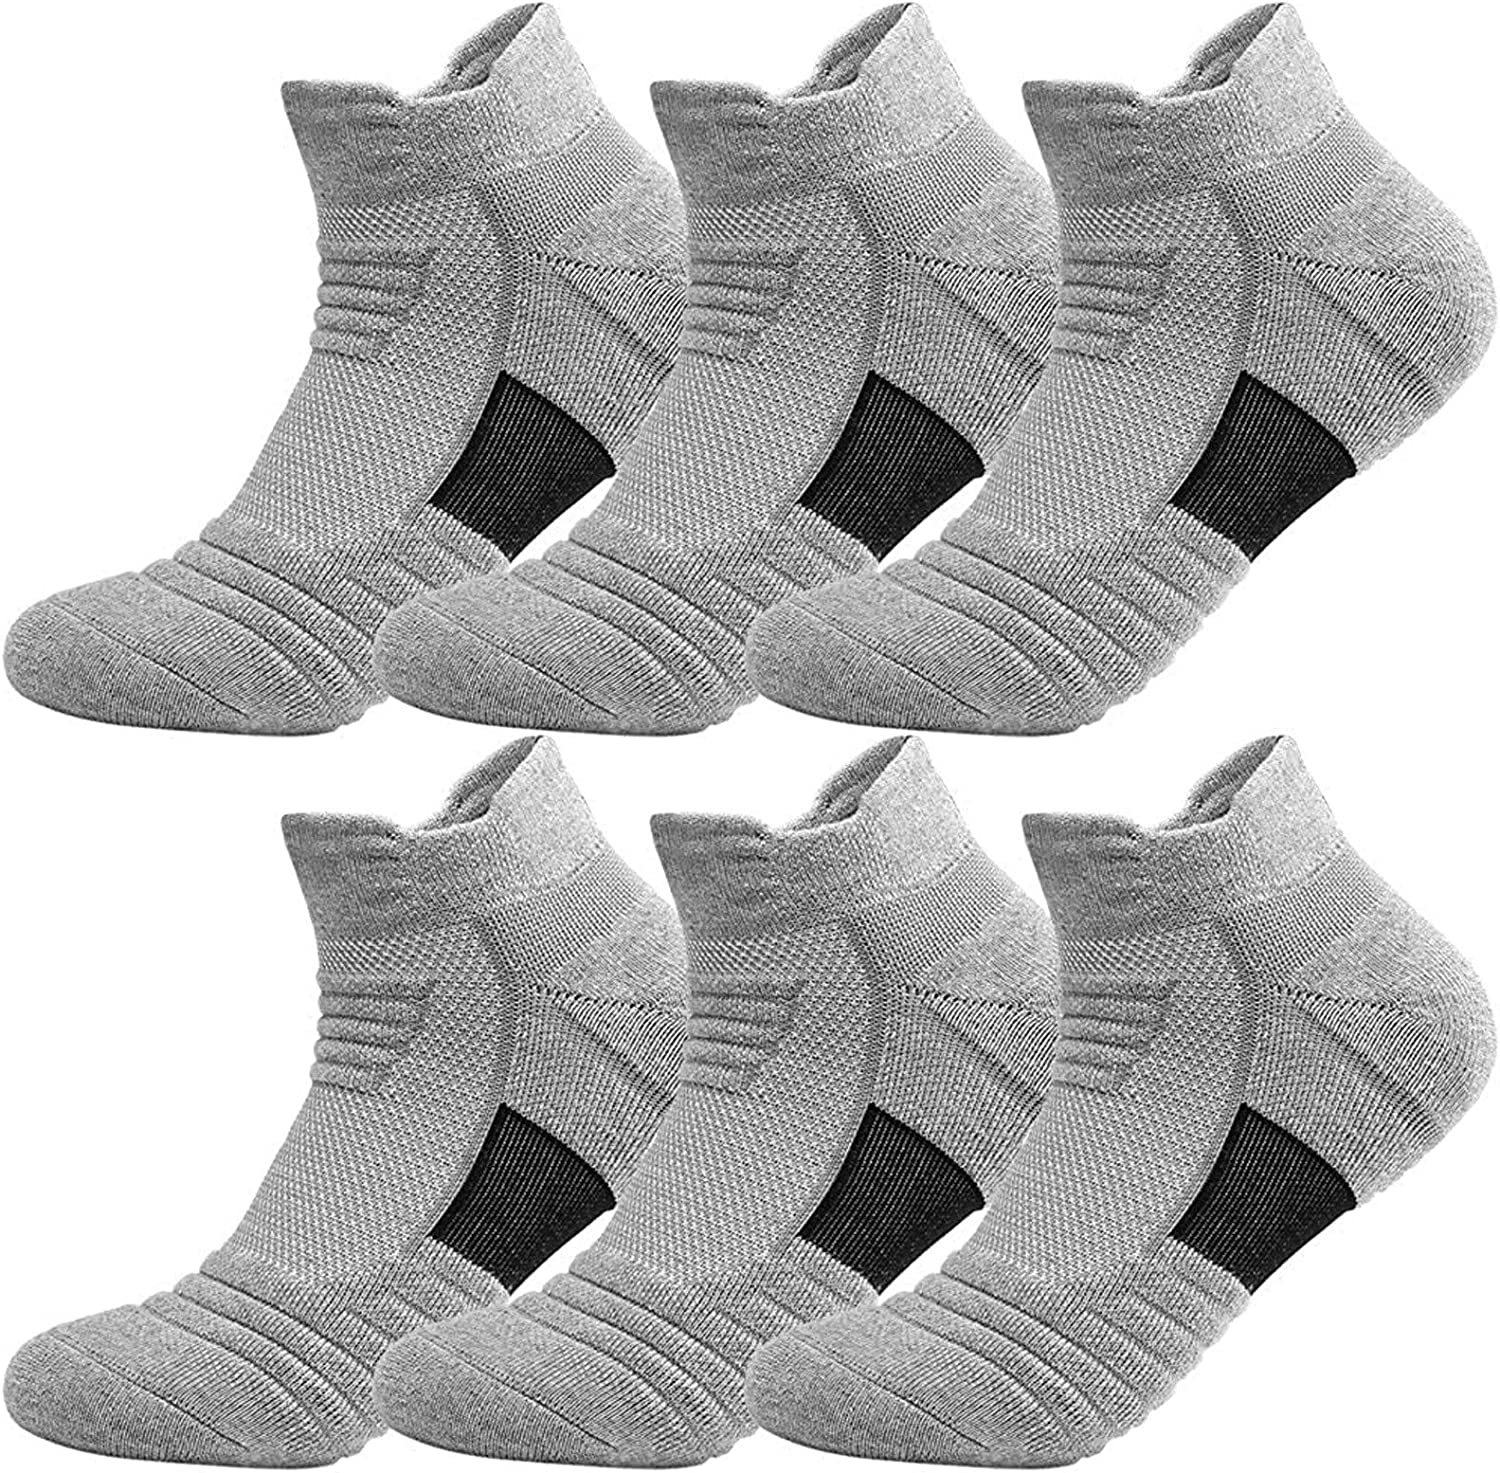 Men High material And Max 56% OFF Women Cotton Socks Athletics Ankle Cozy Sports 6 P